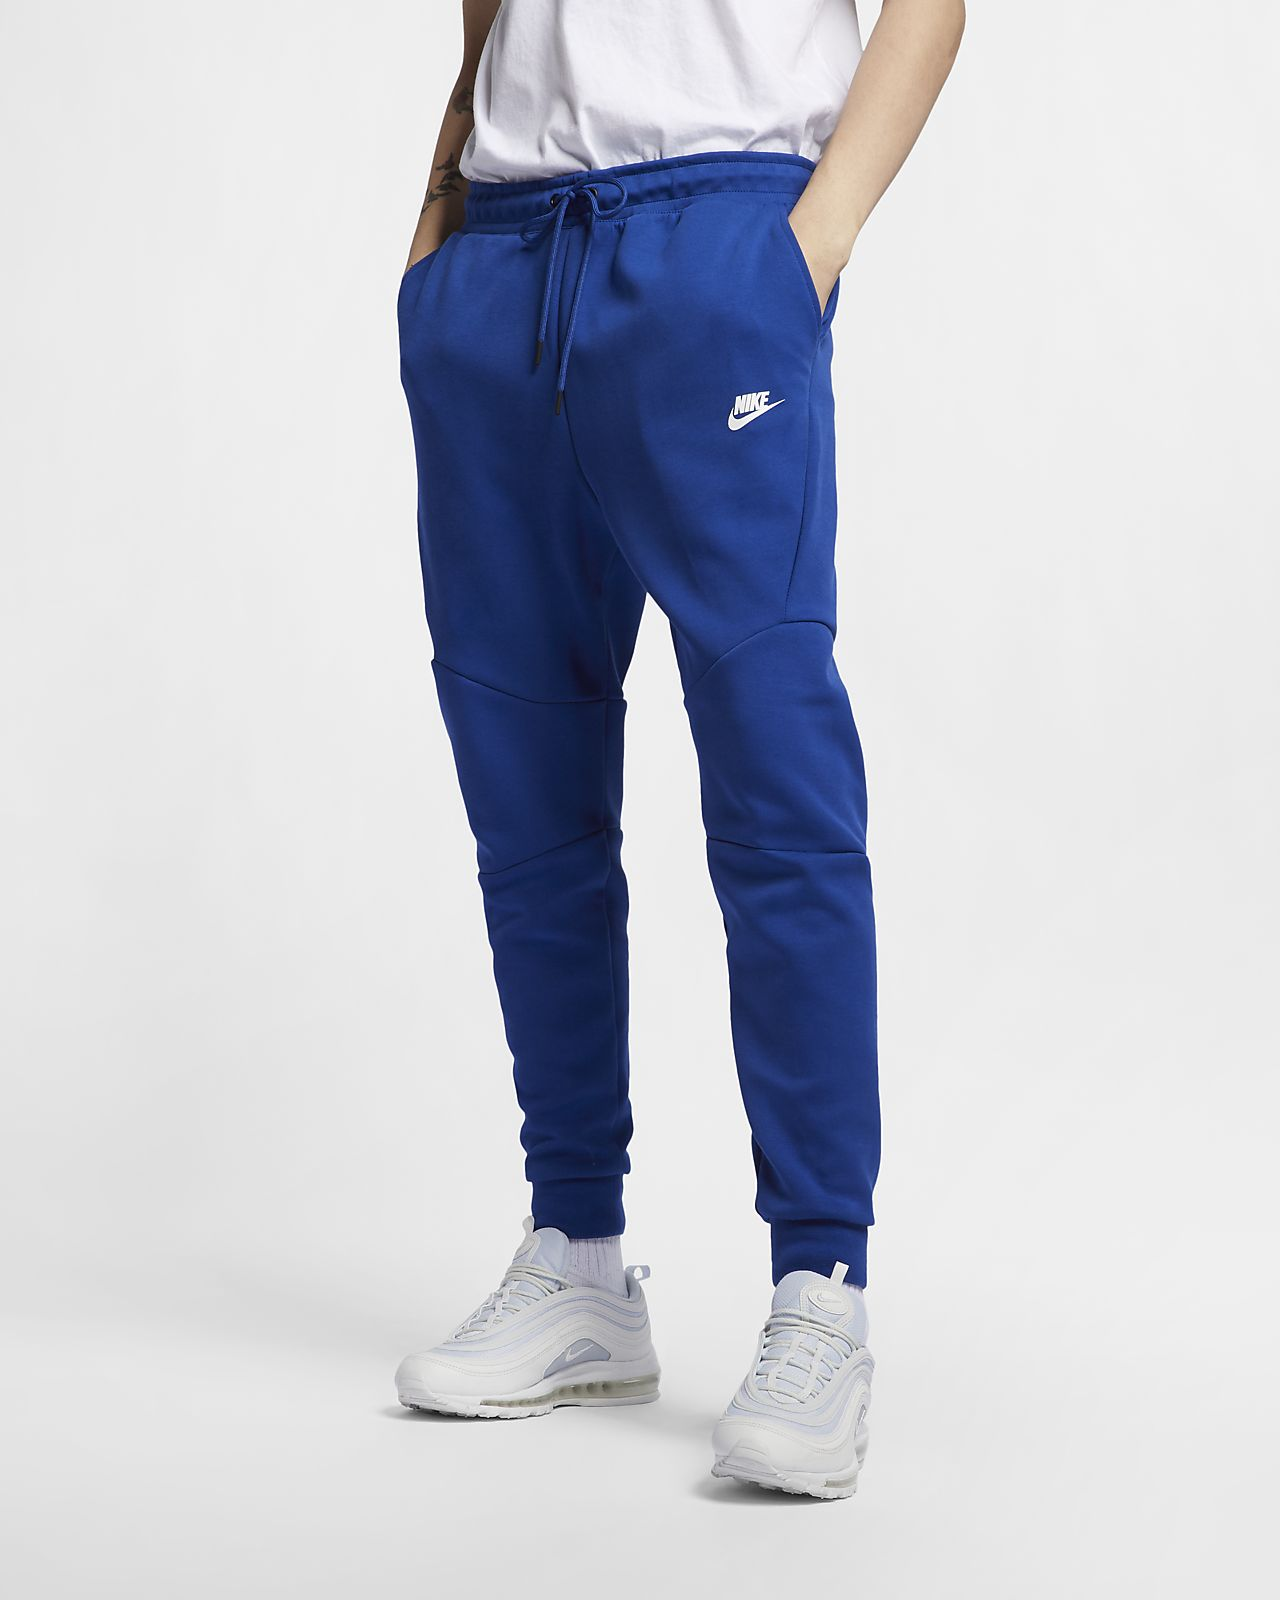 f13ee98623e6 Nike Sportswear Tech Fleece Men s Joggers. Nike.com GB